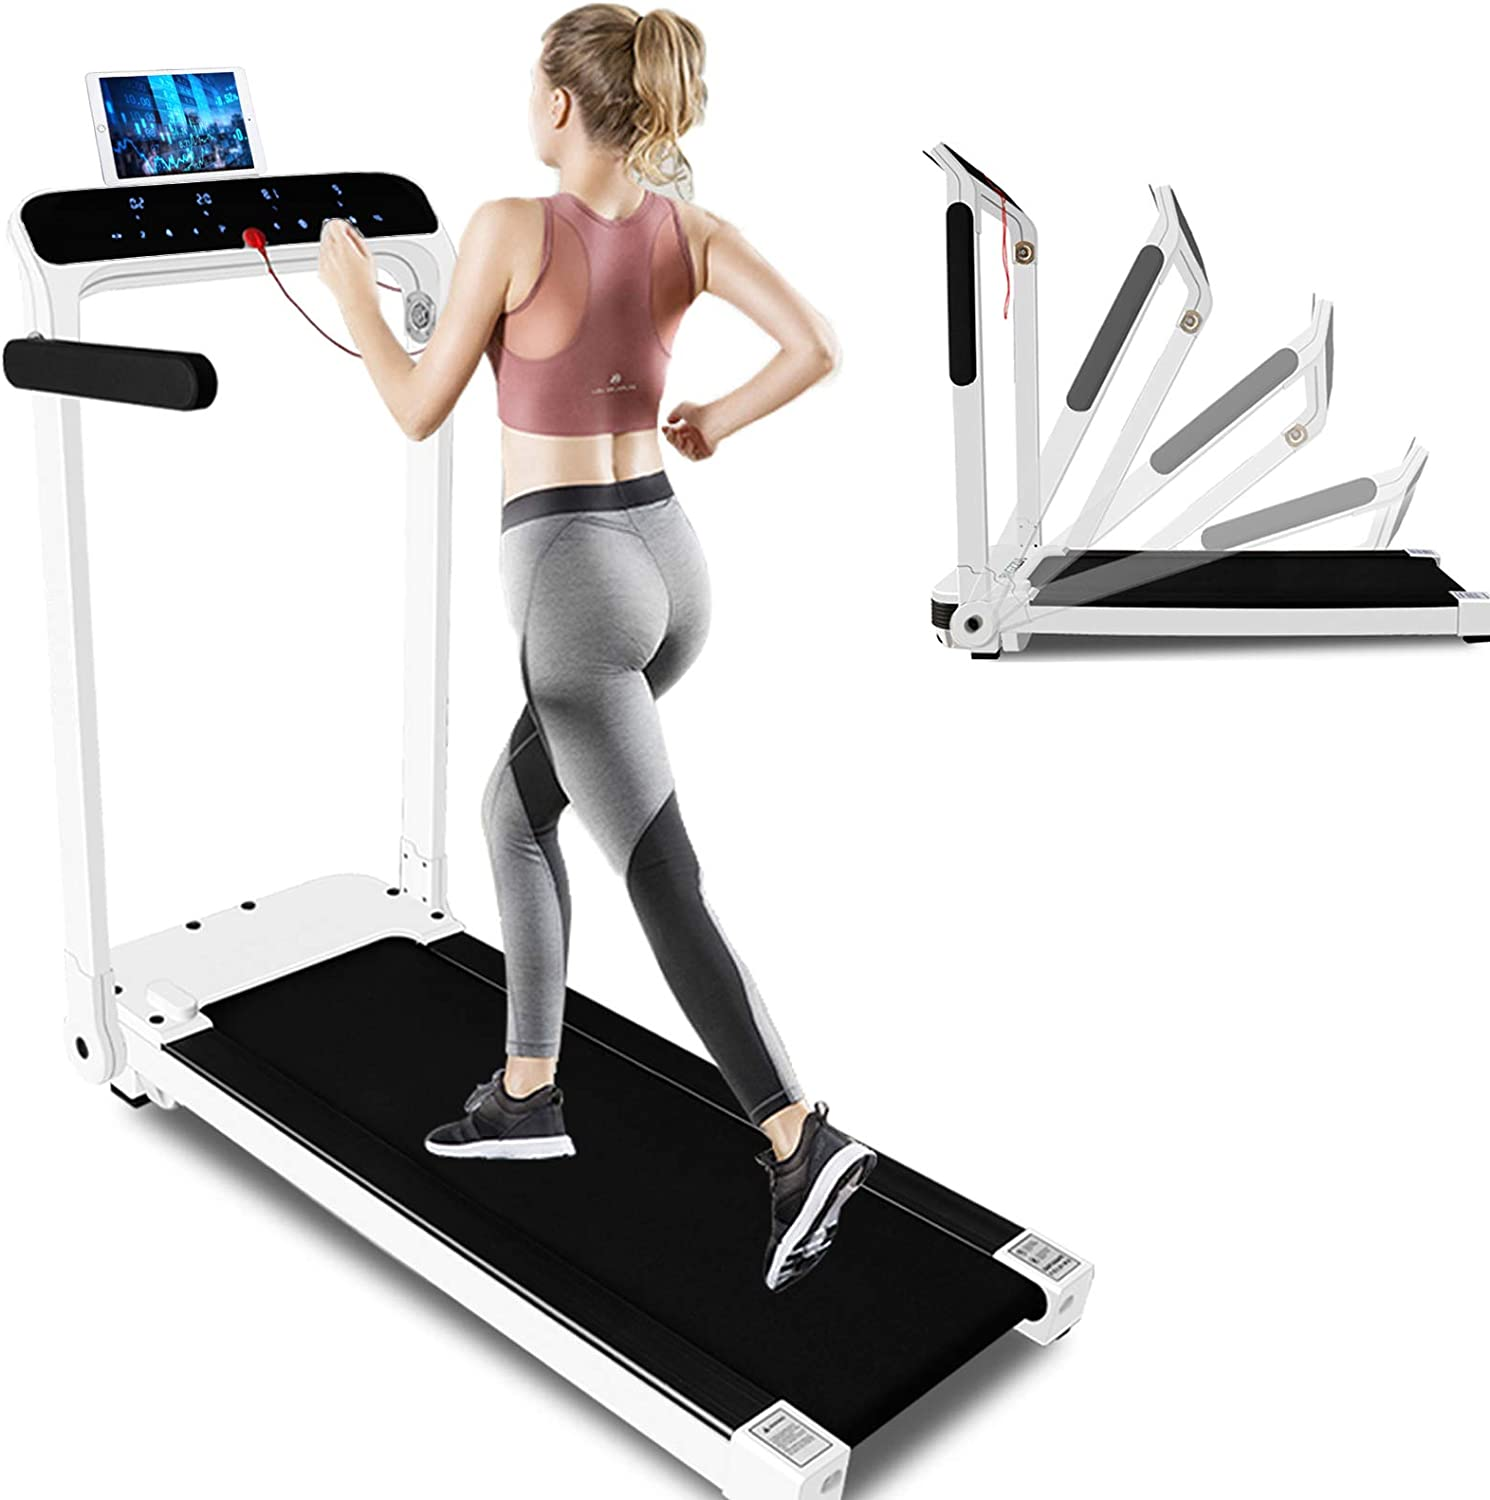 Electric Motorized Workout Running Machine with LED Touch Display Folding Treadmill Safe Key and Tablet//Phone Holder for Home Gym Office Space Saver Adjustable Armrest Installation-Free